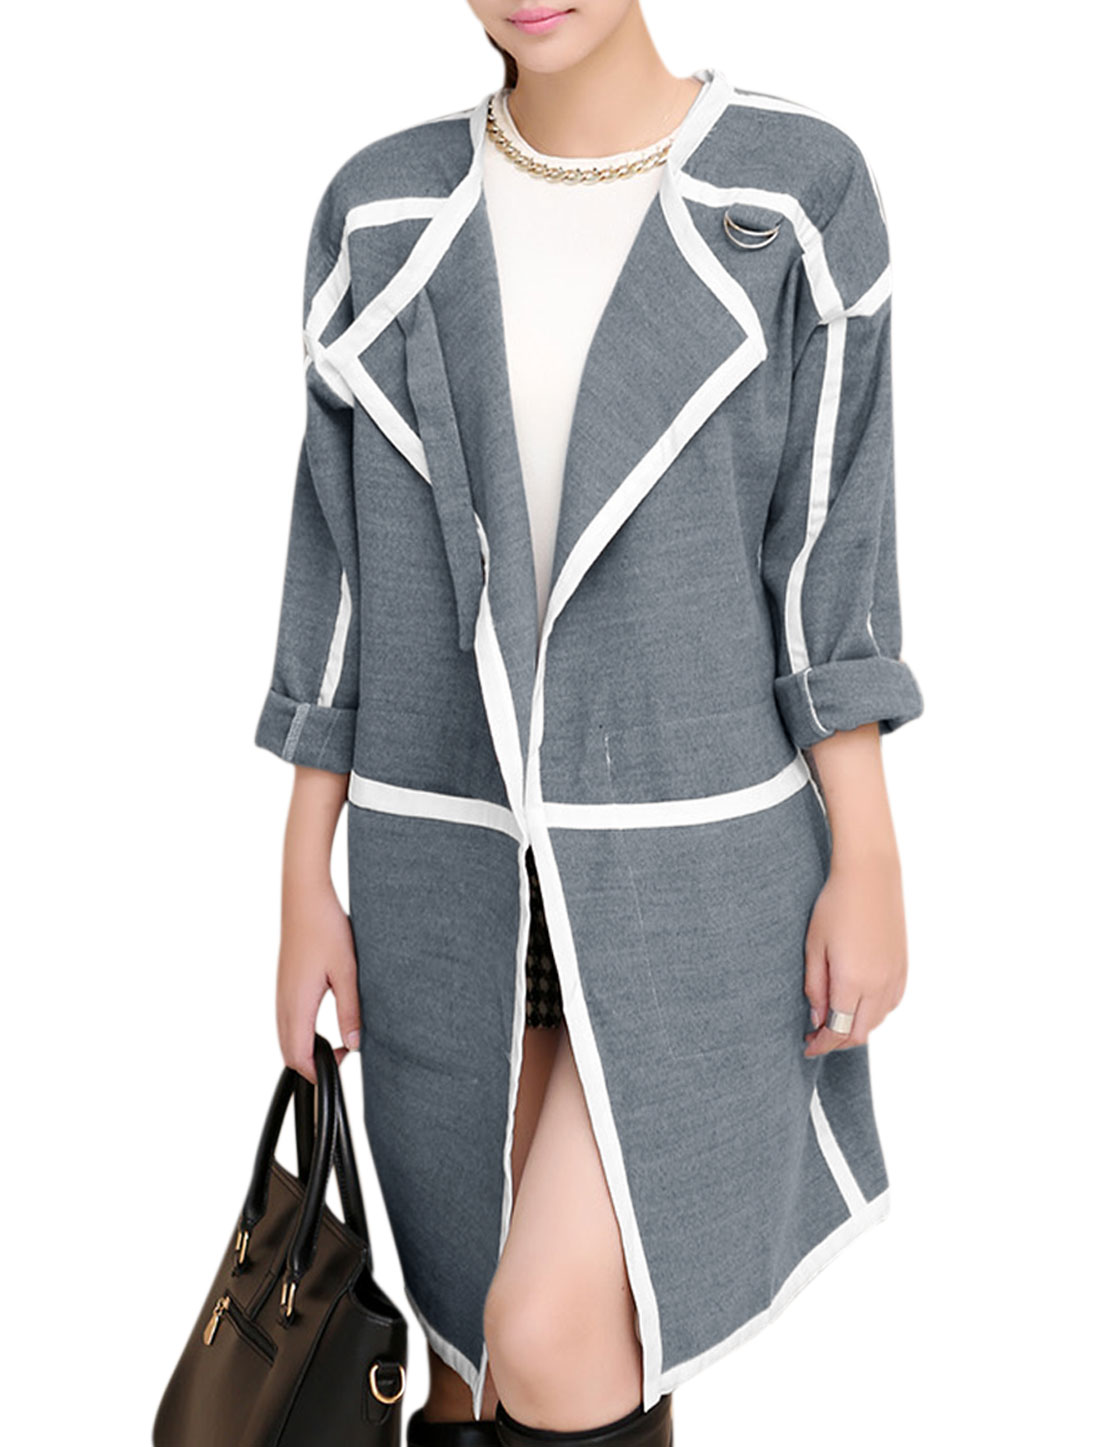 Lady Front Opening Buckle Design Detail Leisure Trench Peacoat Gray L